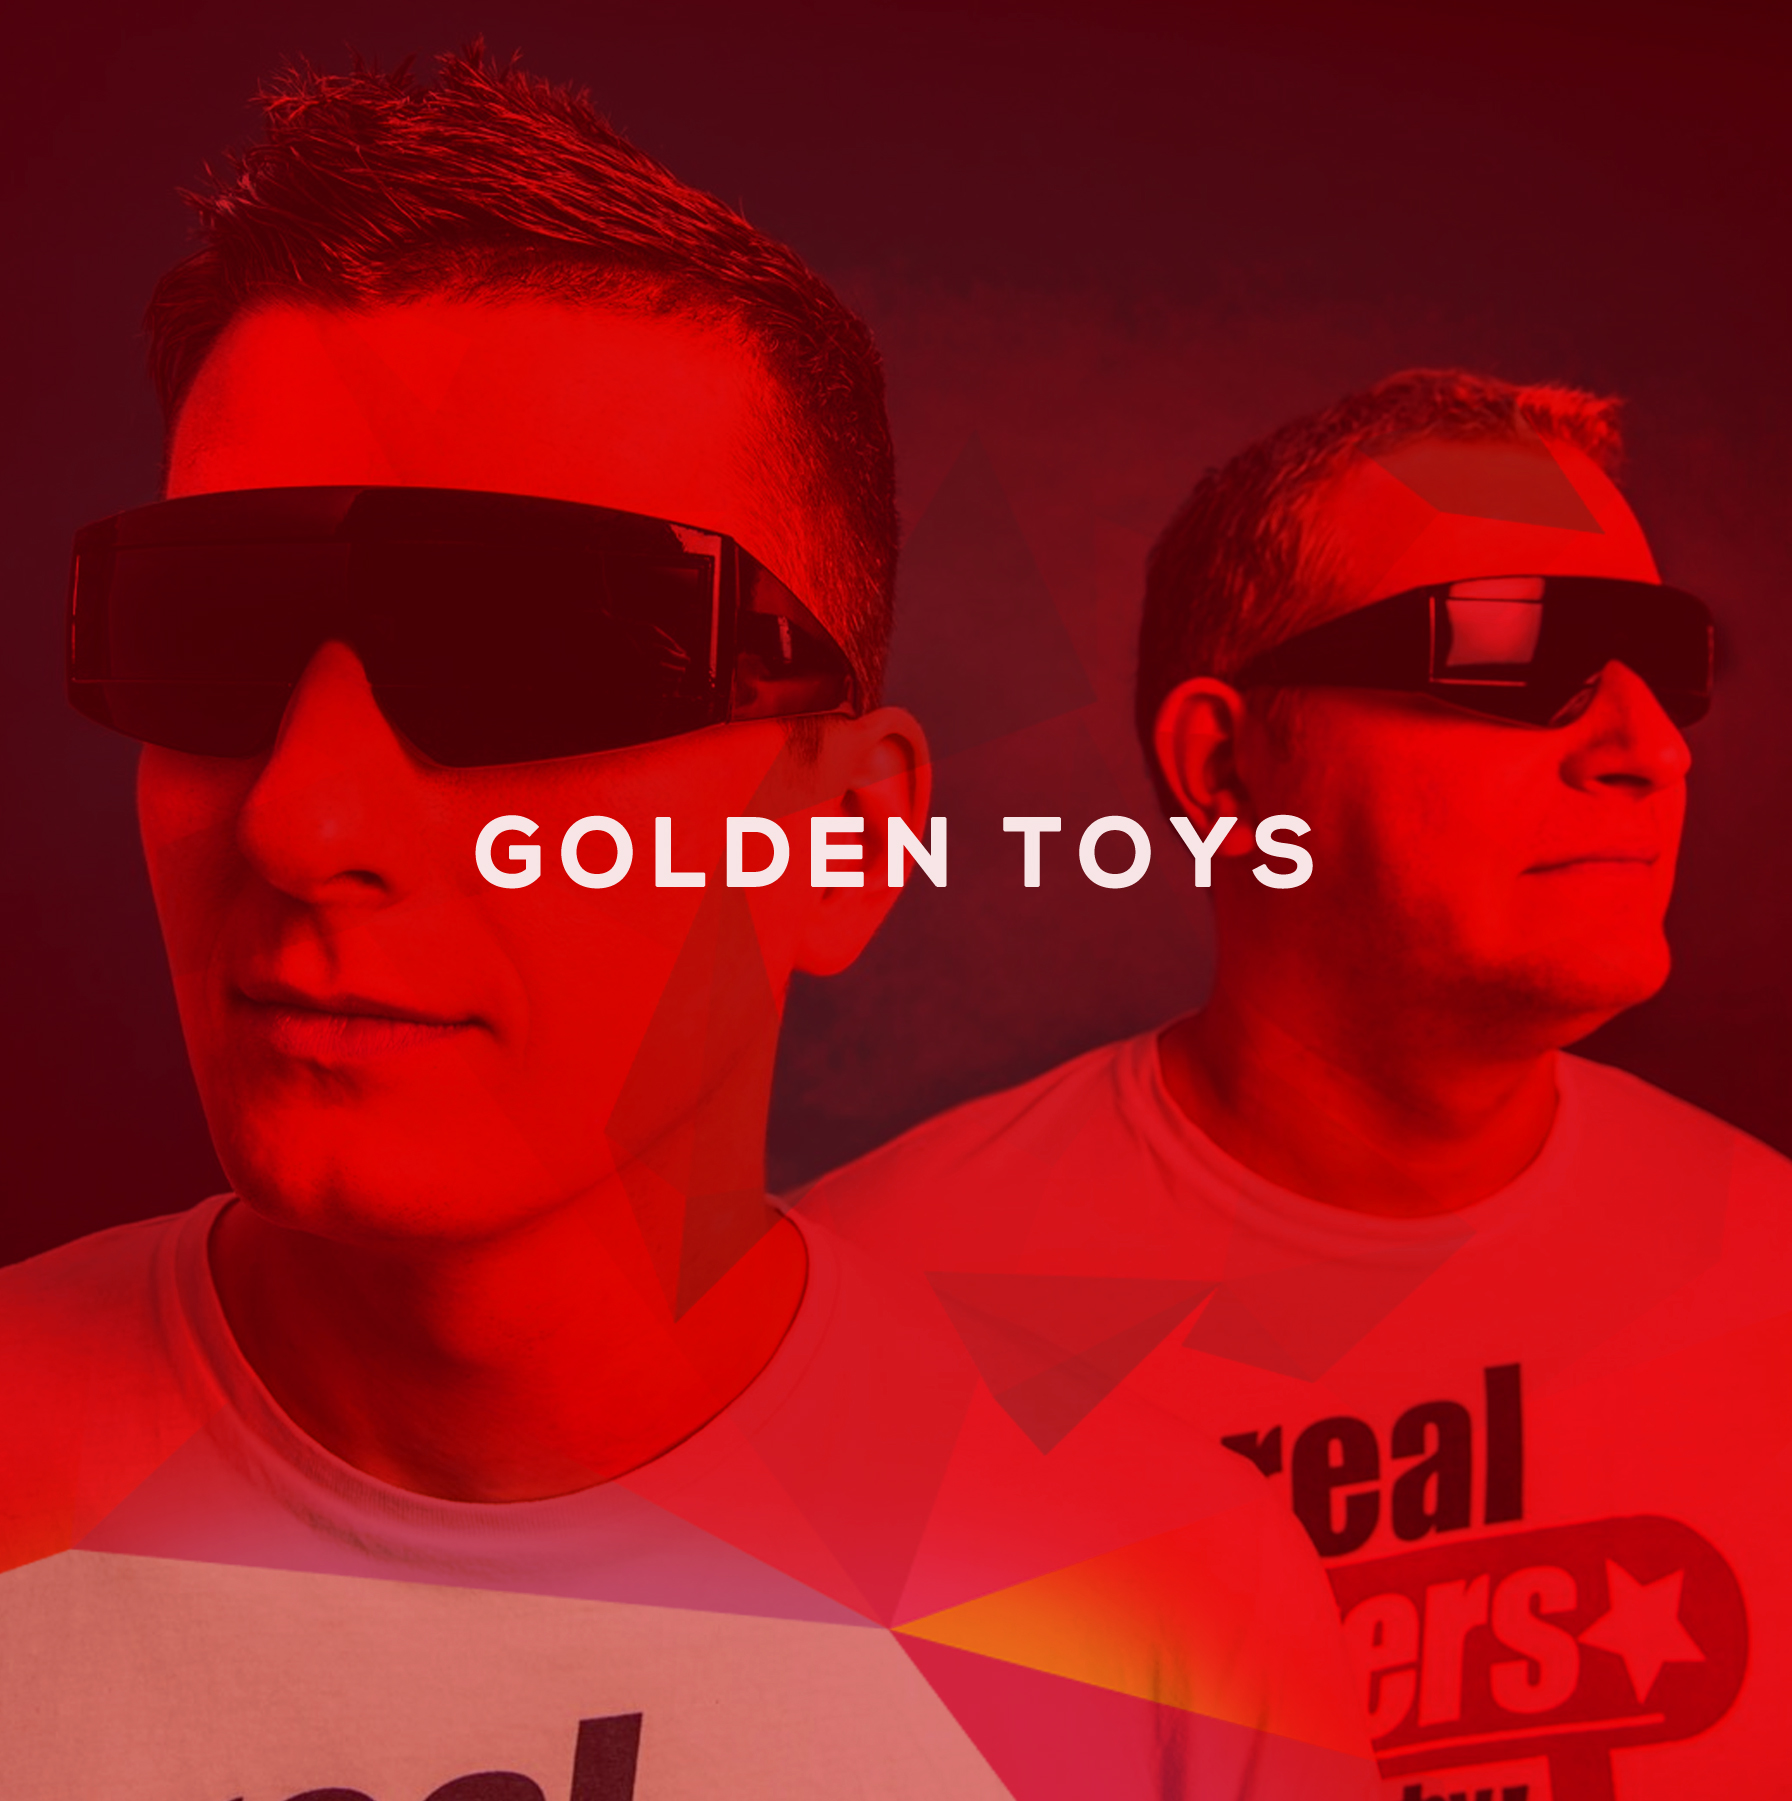 HP-Act-golden-toys